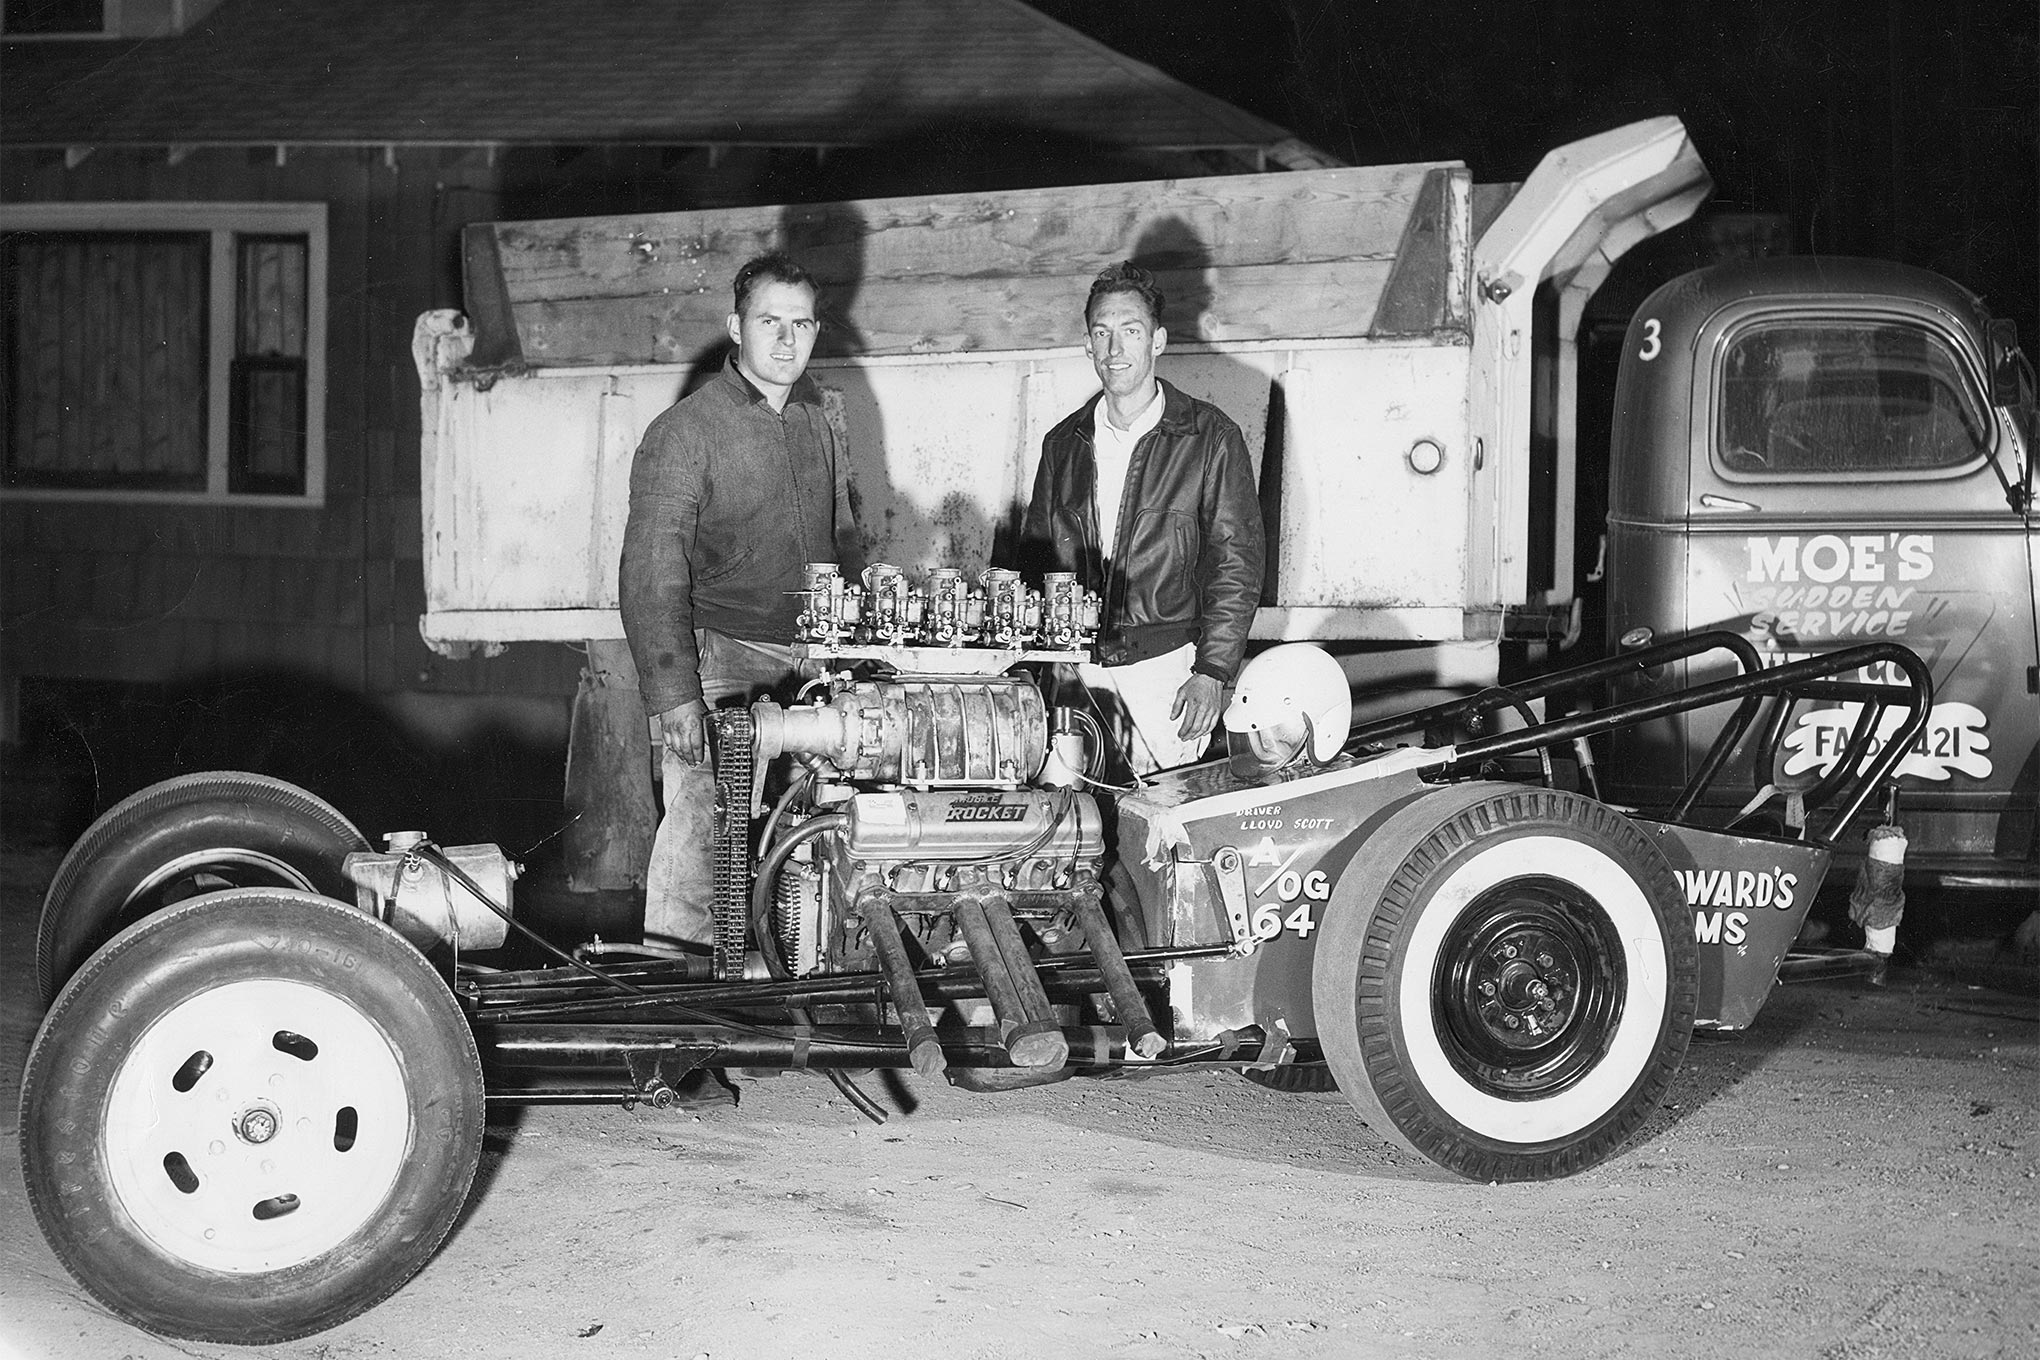 Scotty with Orville Moe after winning the 1958 Inland Empire Championships. Note the manifold for five Holley carburetors.